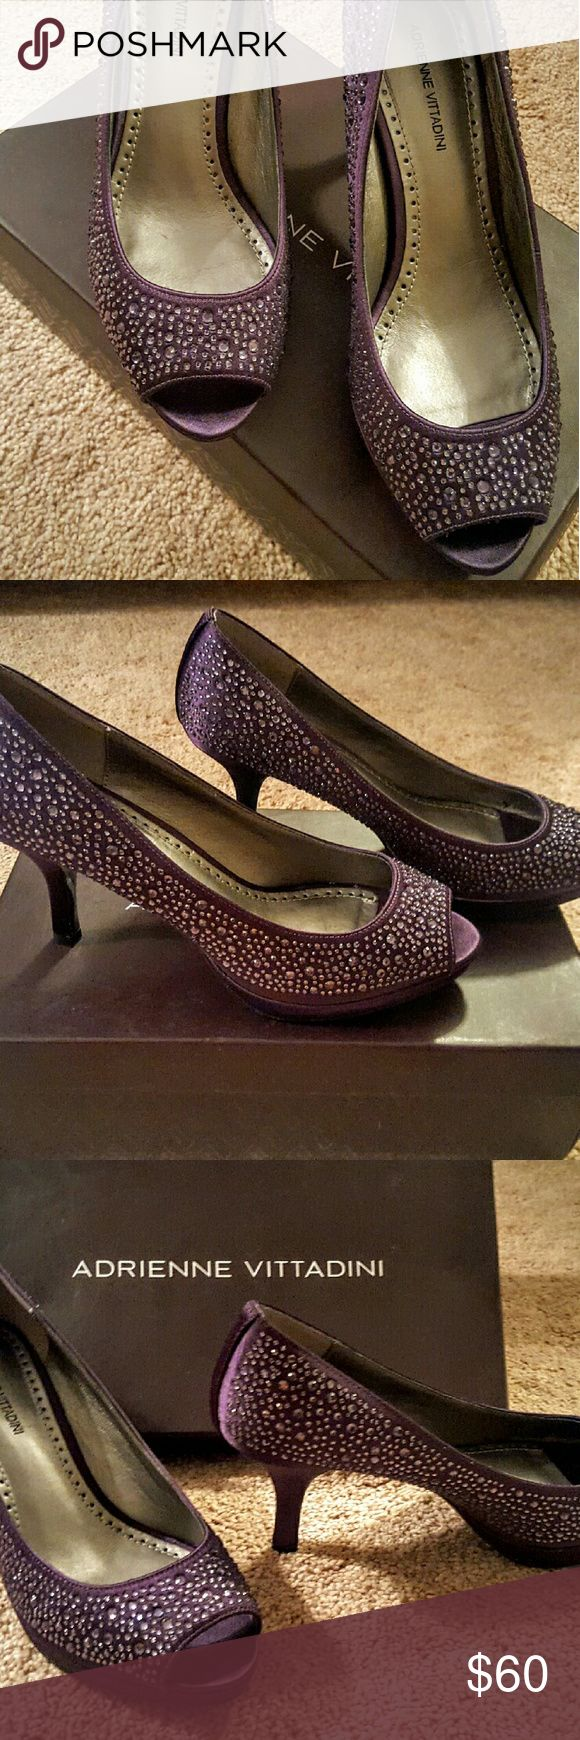 Adrienne Vittadini purple satin heels Peep toe Purple satin heels with crystals. Brand new, never worn! Excellent condition. 3 inch heels Adrienne Vittadini Shoes Heels